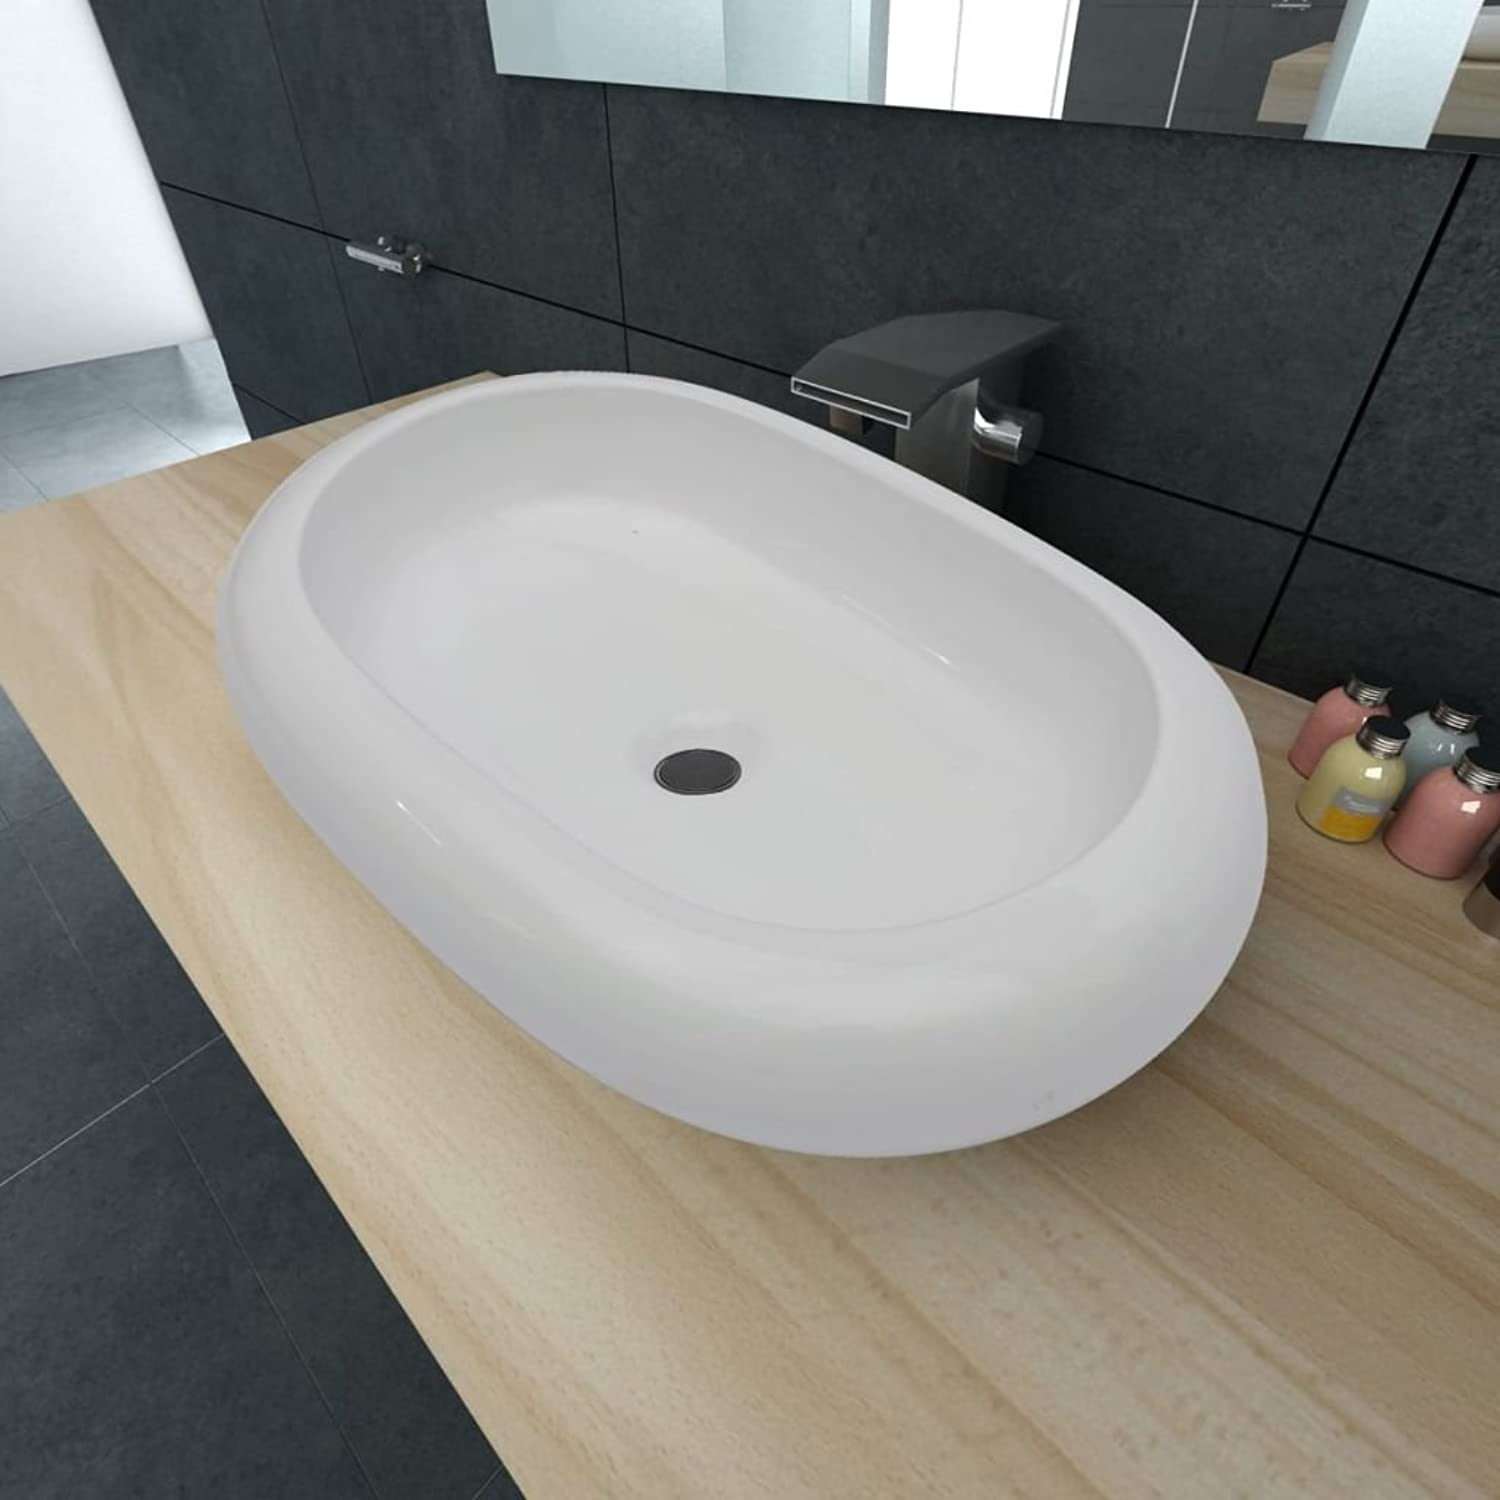 SENLUOWX Luxurious White Oval Ceramic Countertop Wash Basin with 63?x 42?cm